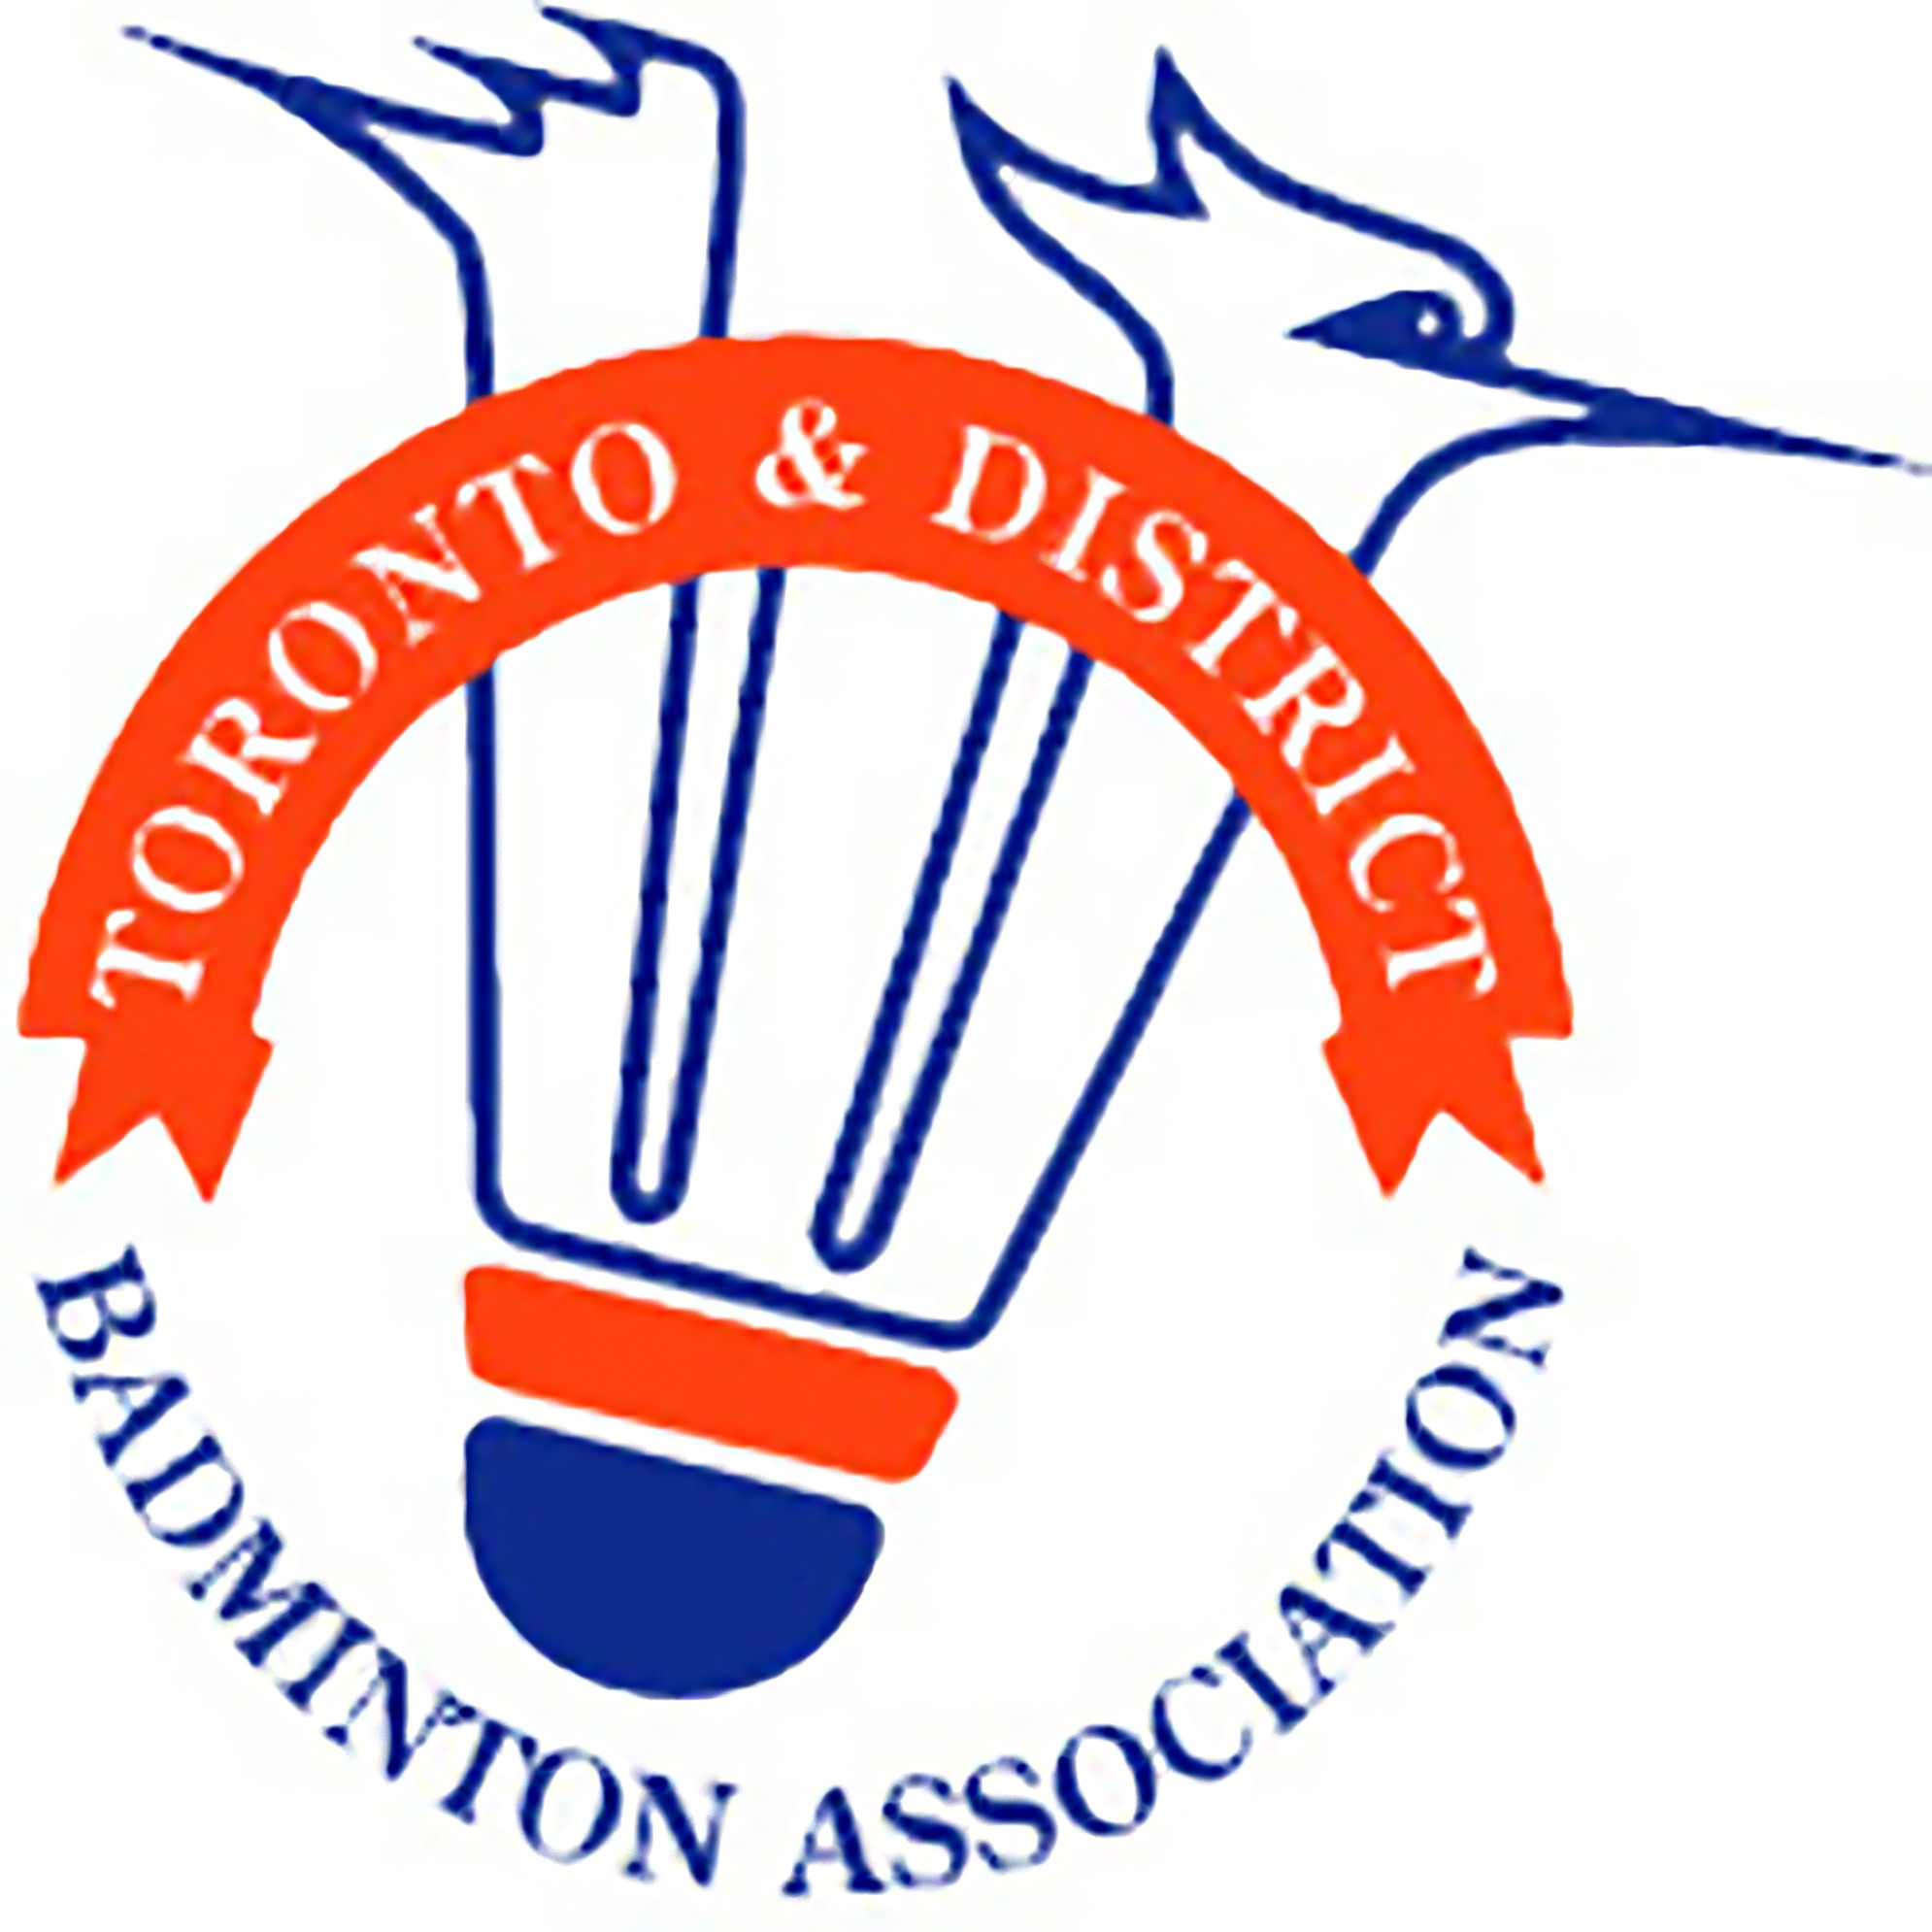 Toronto District Badminton Association